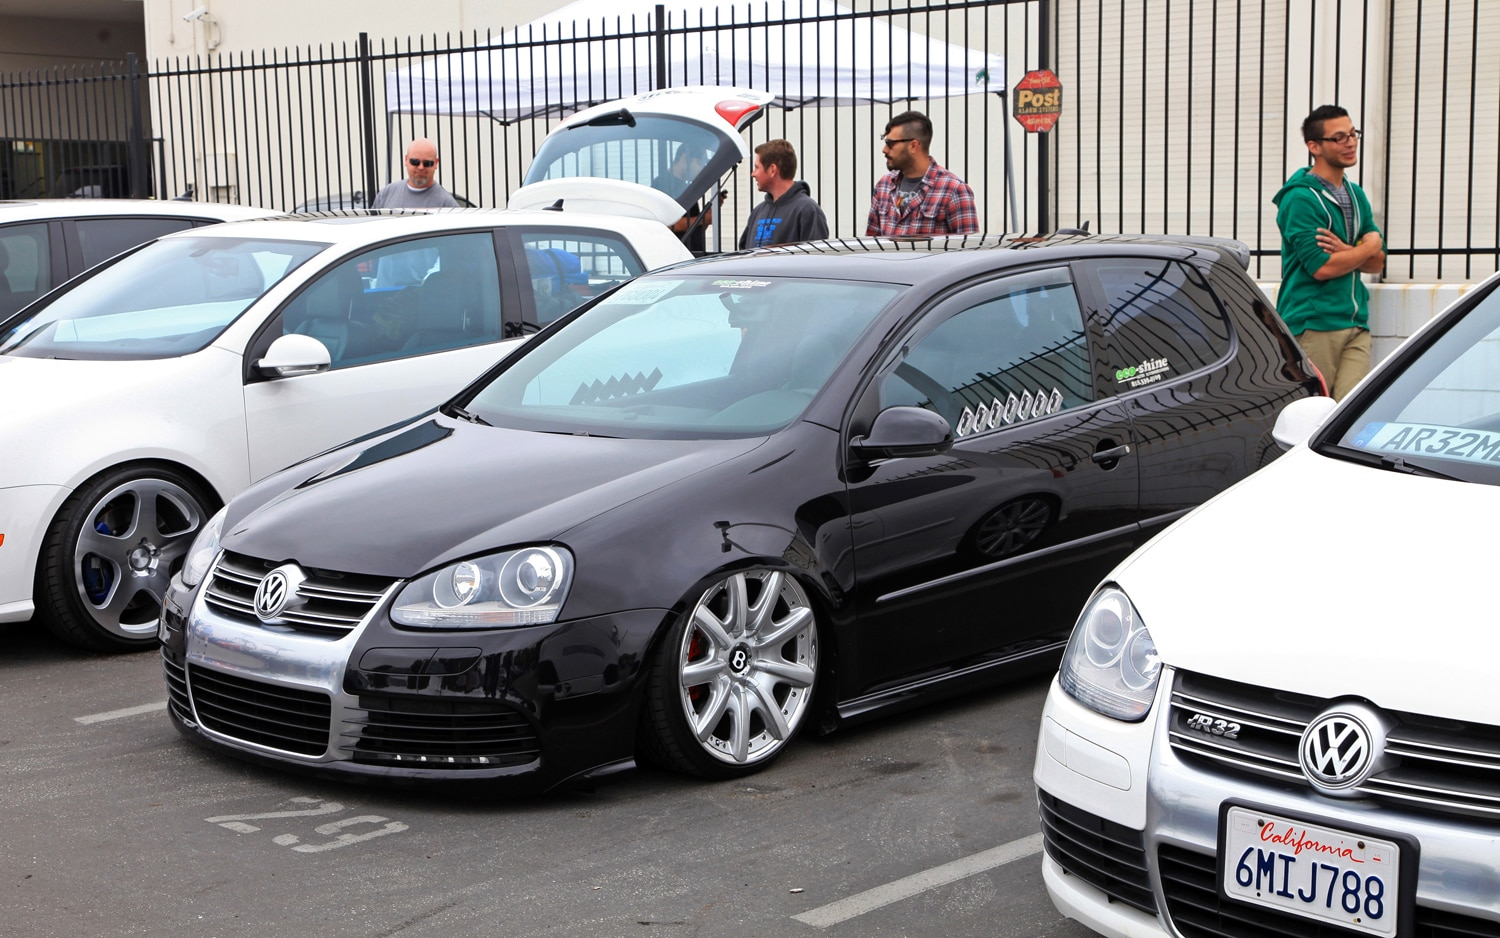 2004 and 2008 Volkswagen R32 and 2013 Volkswagen Golf-R - Automobile